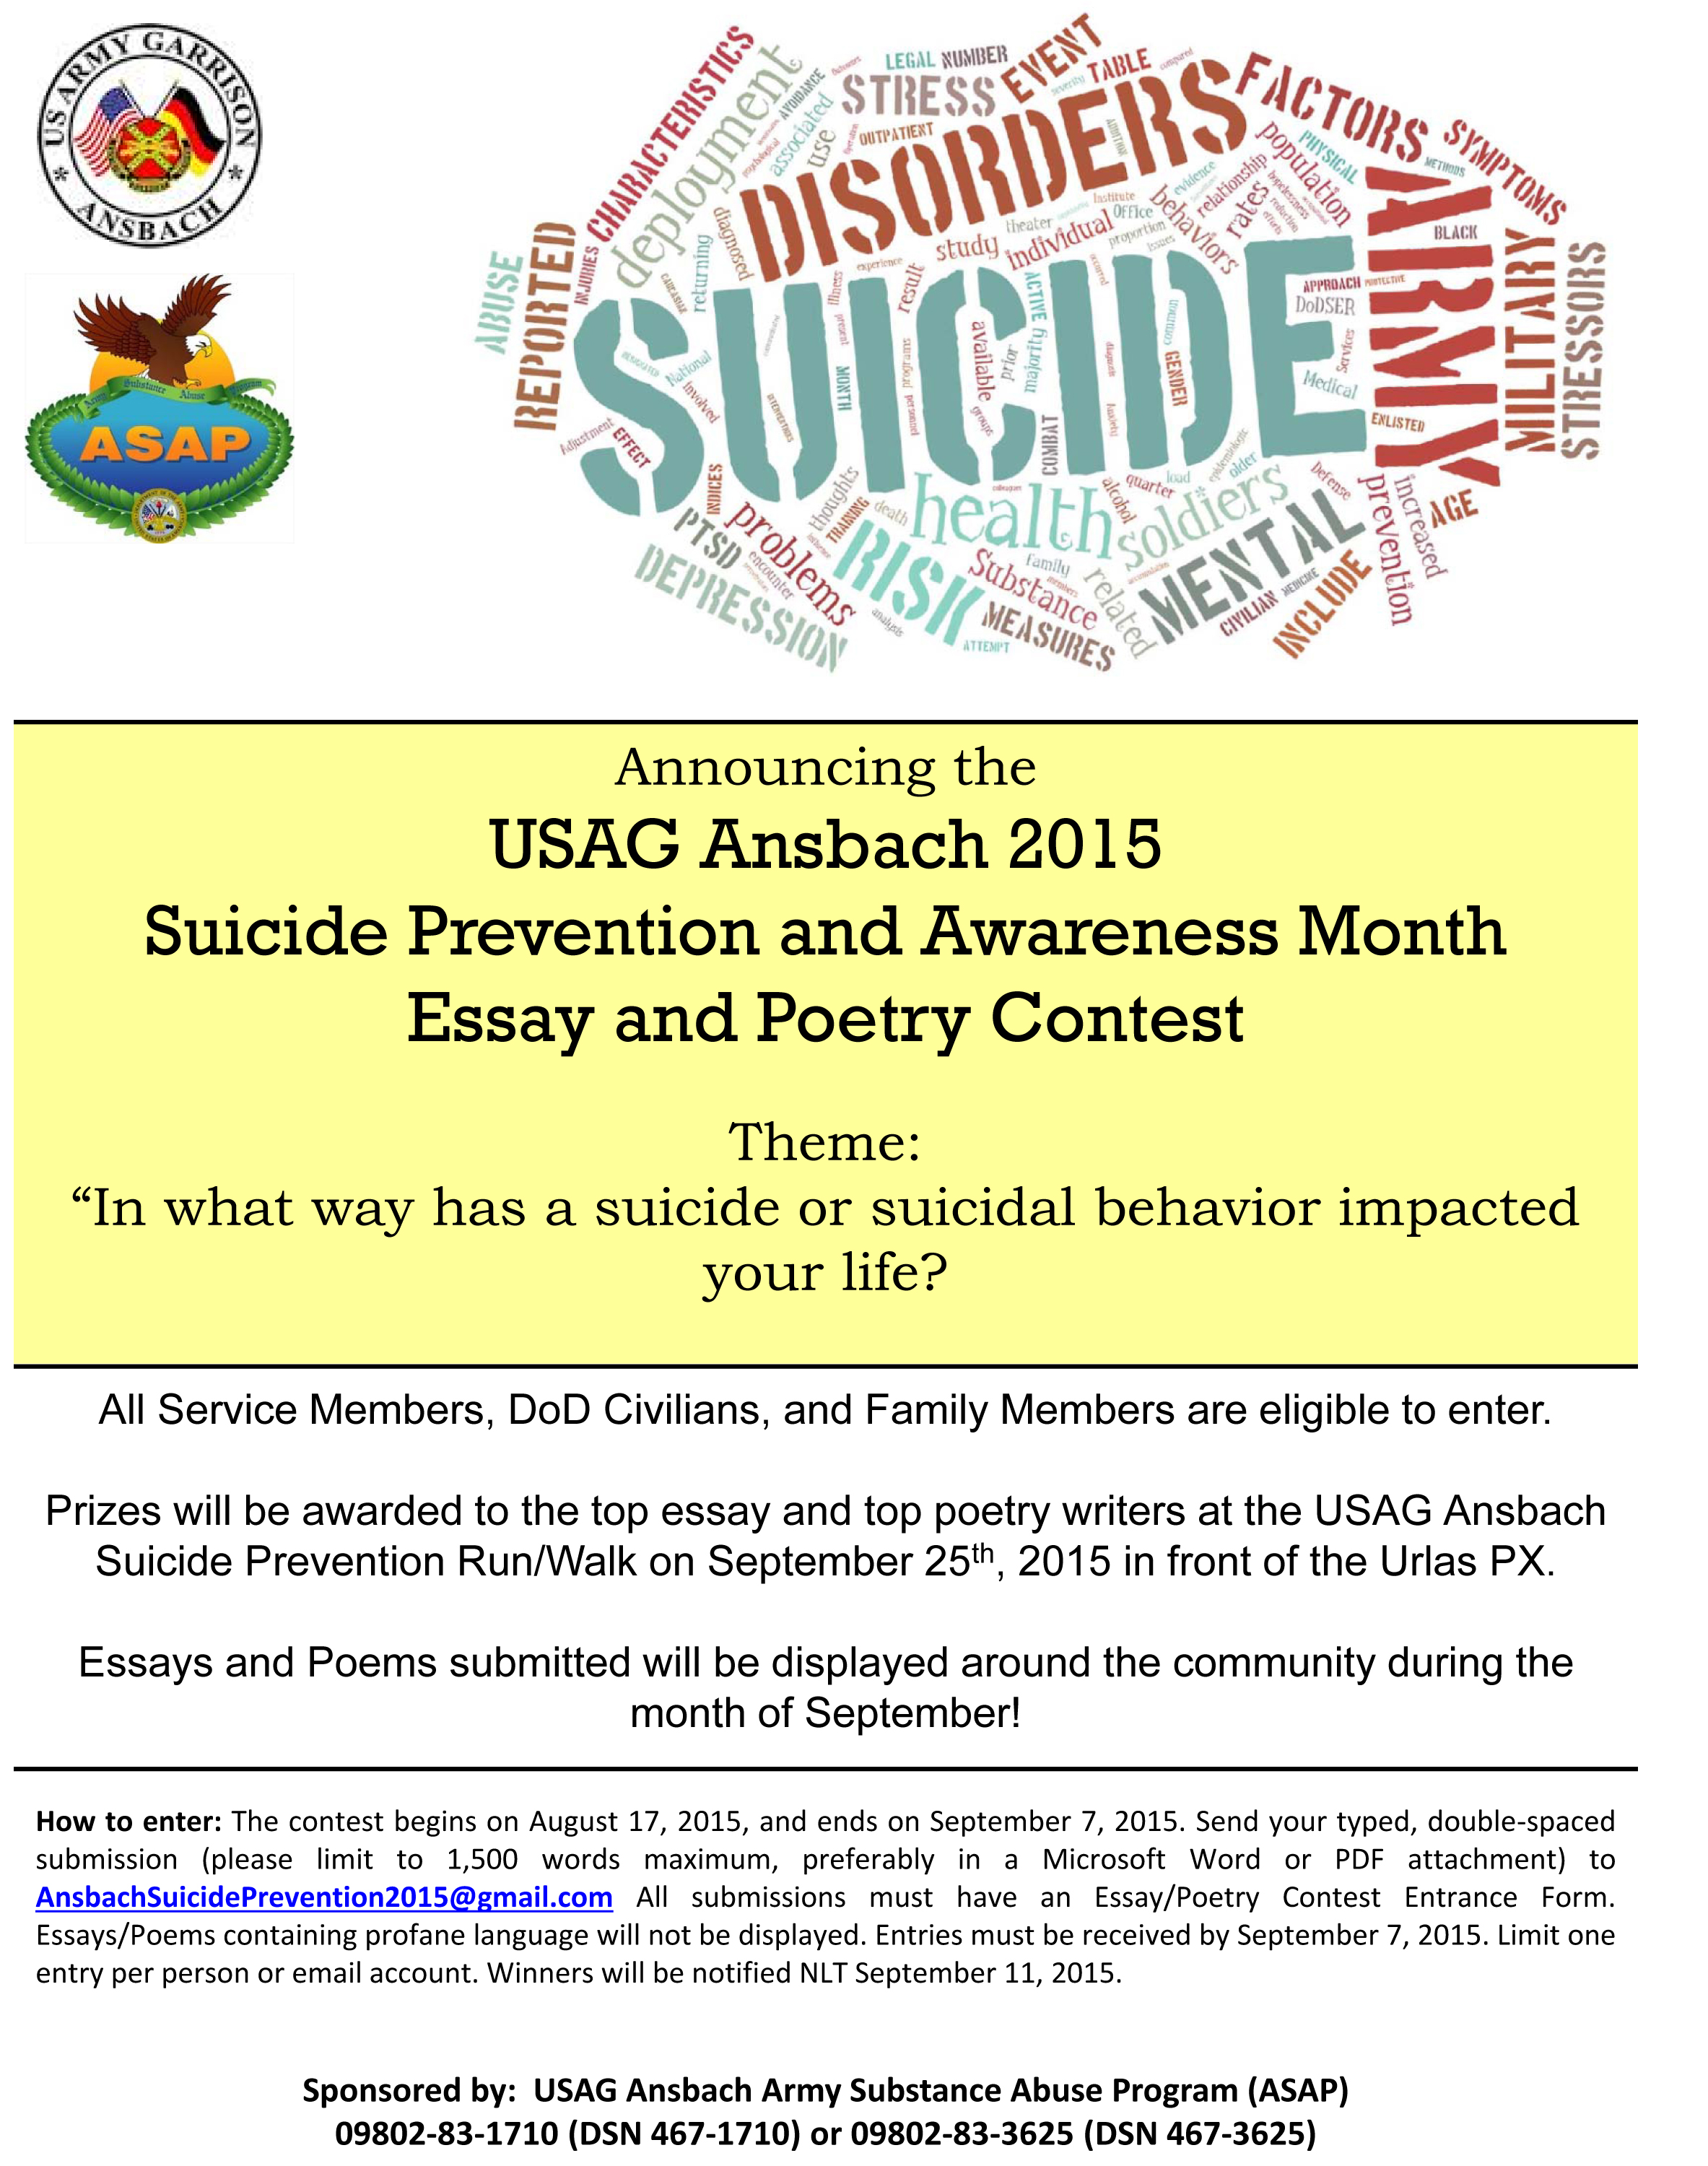 ansbach hometown herald asap hosts suicide prevention month click image to enlarge